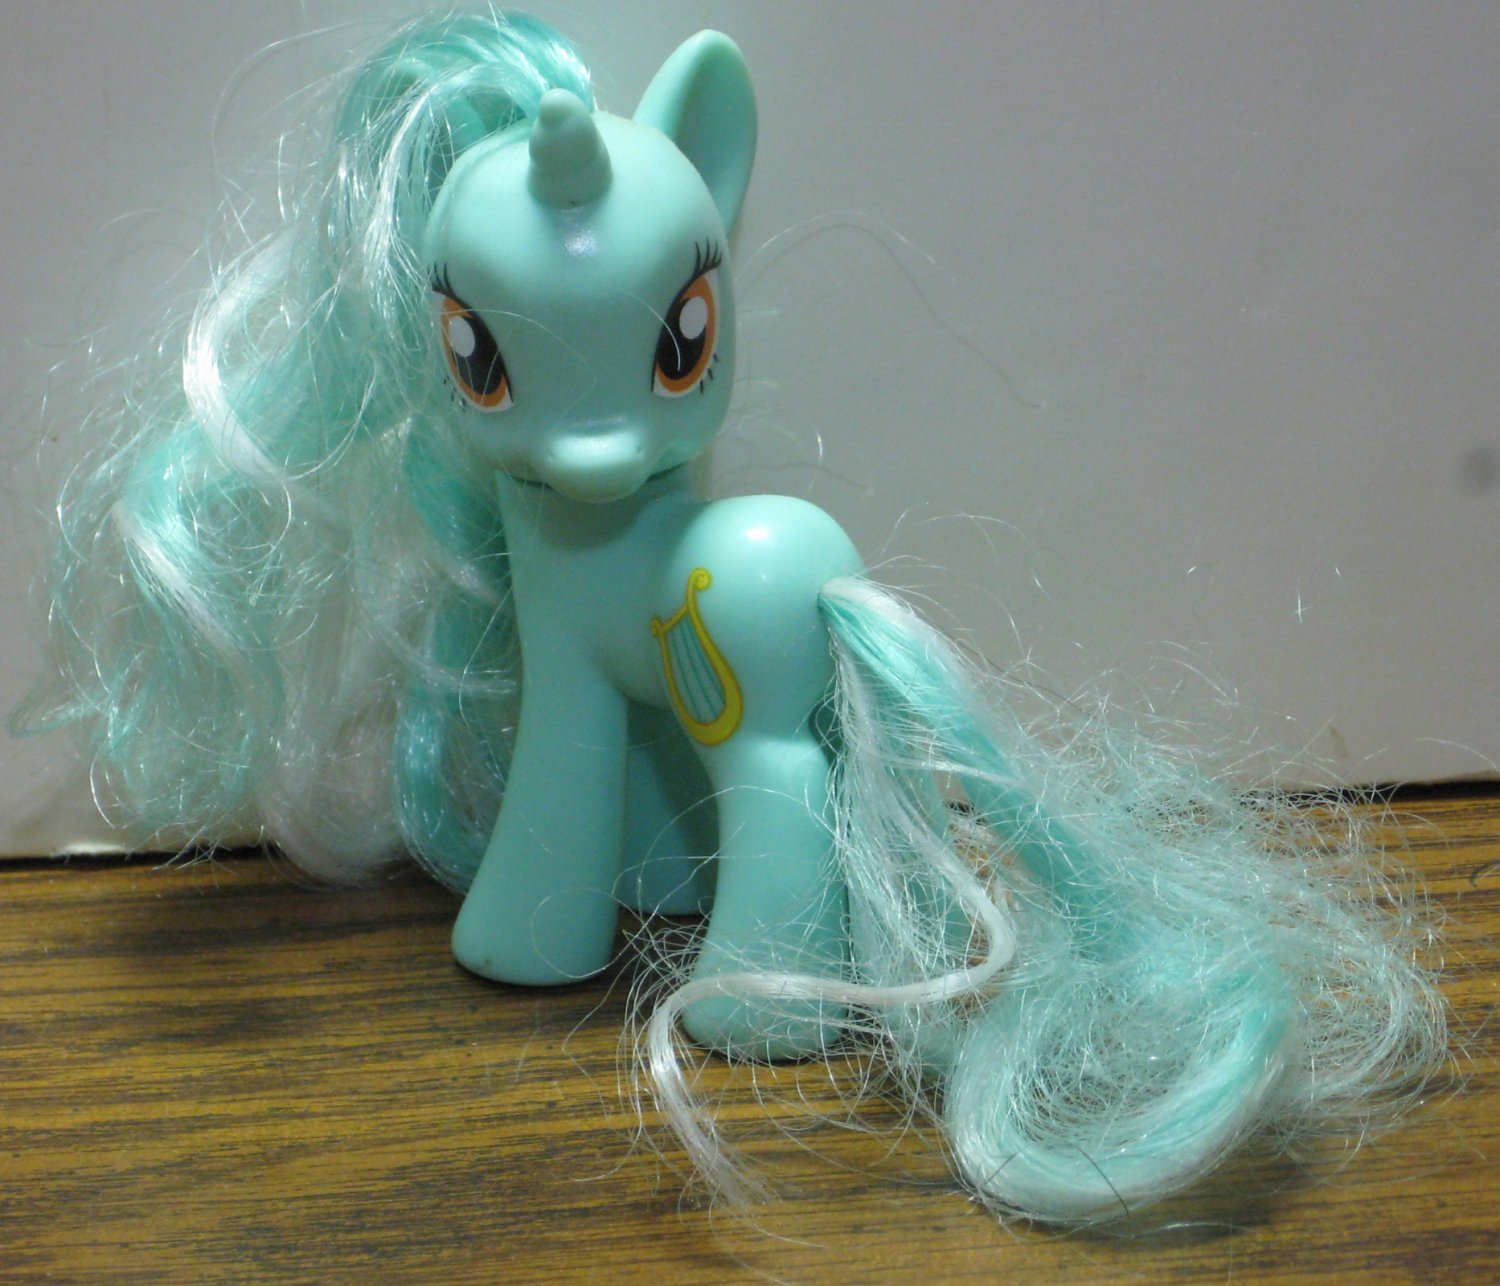 My Little Pony Friendship is Magic Lyra Heartstrings - Favorites Collection 2013